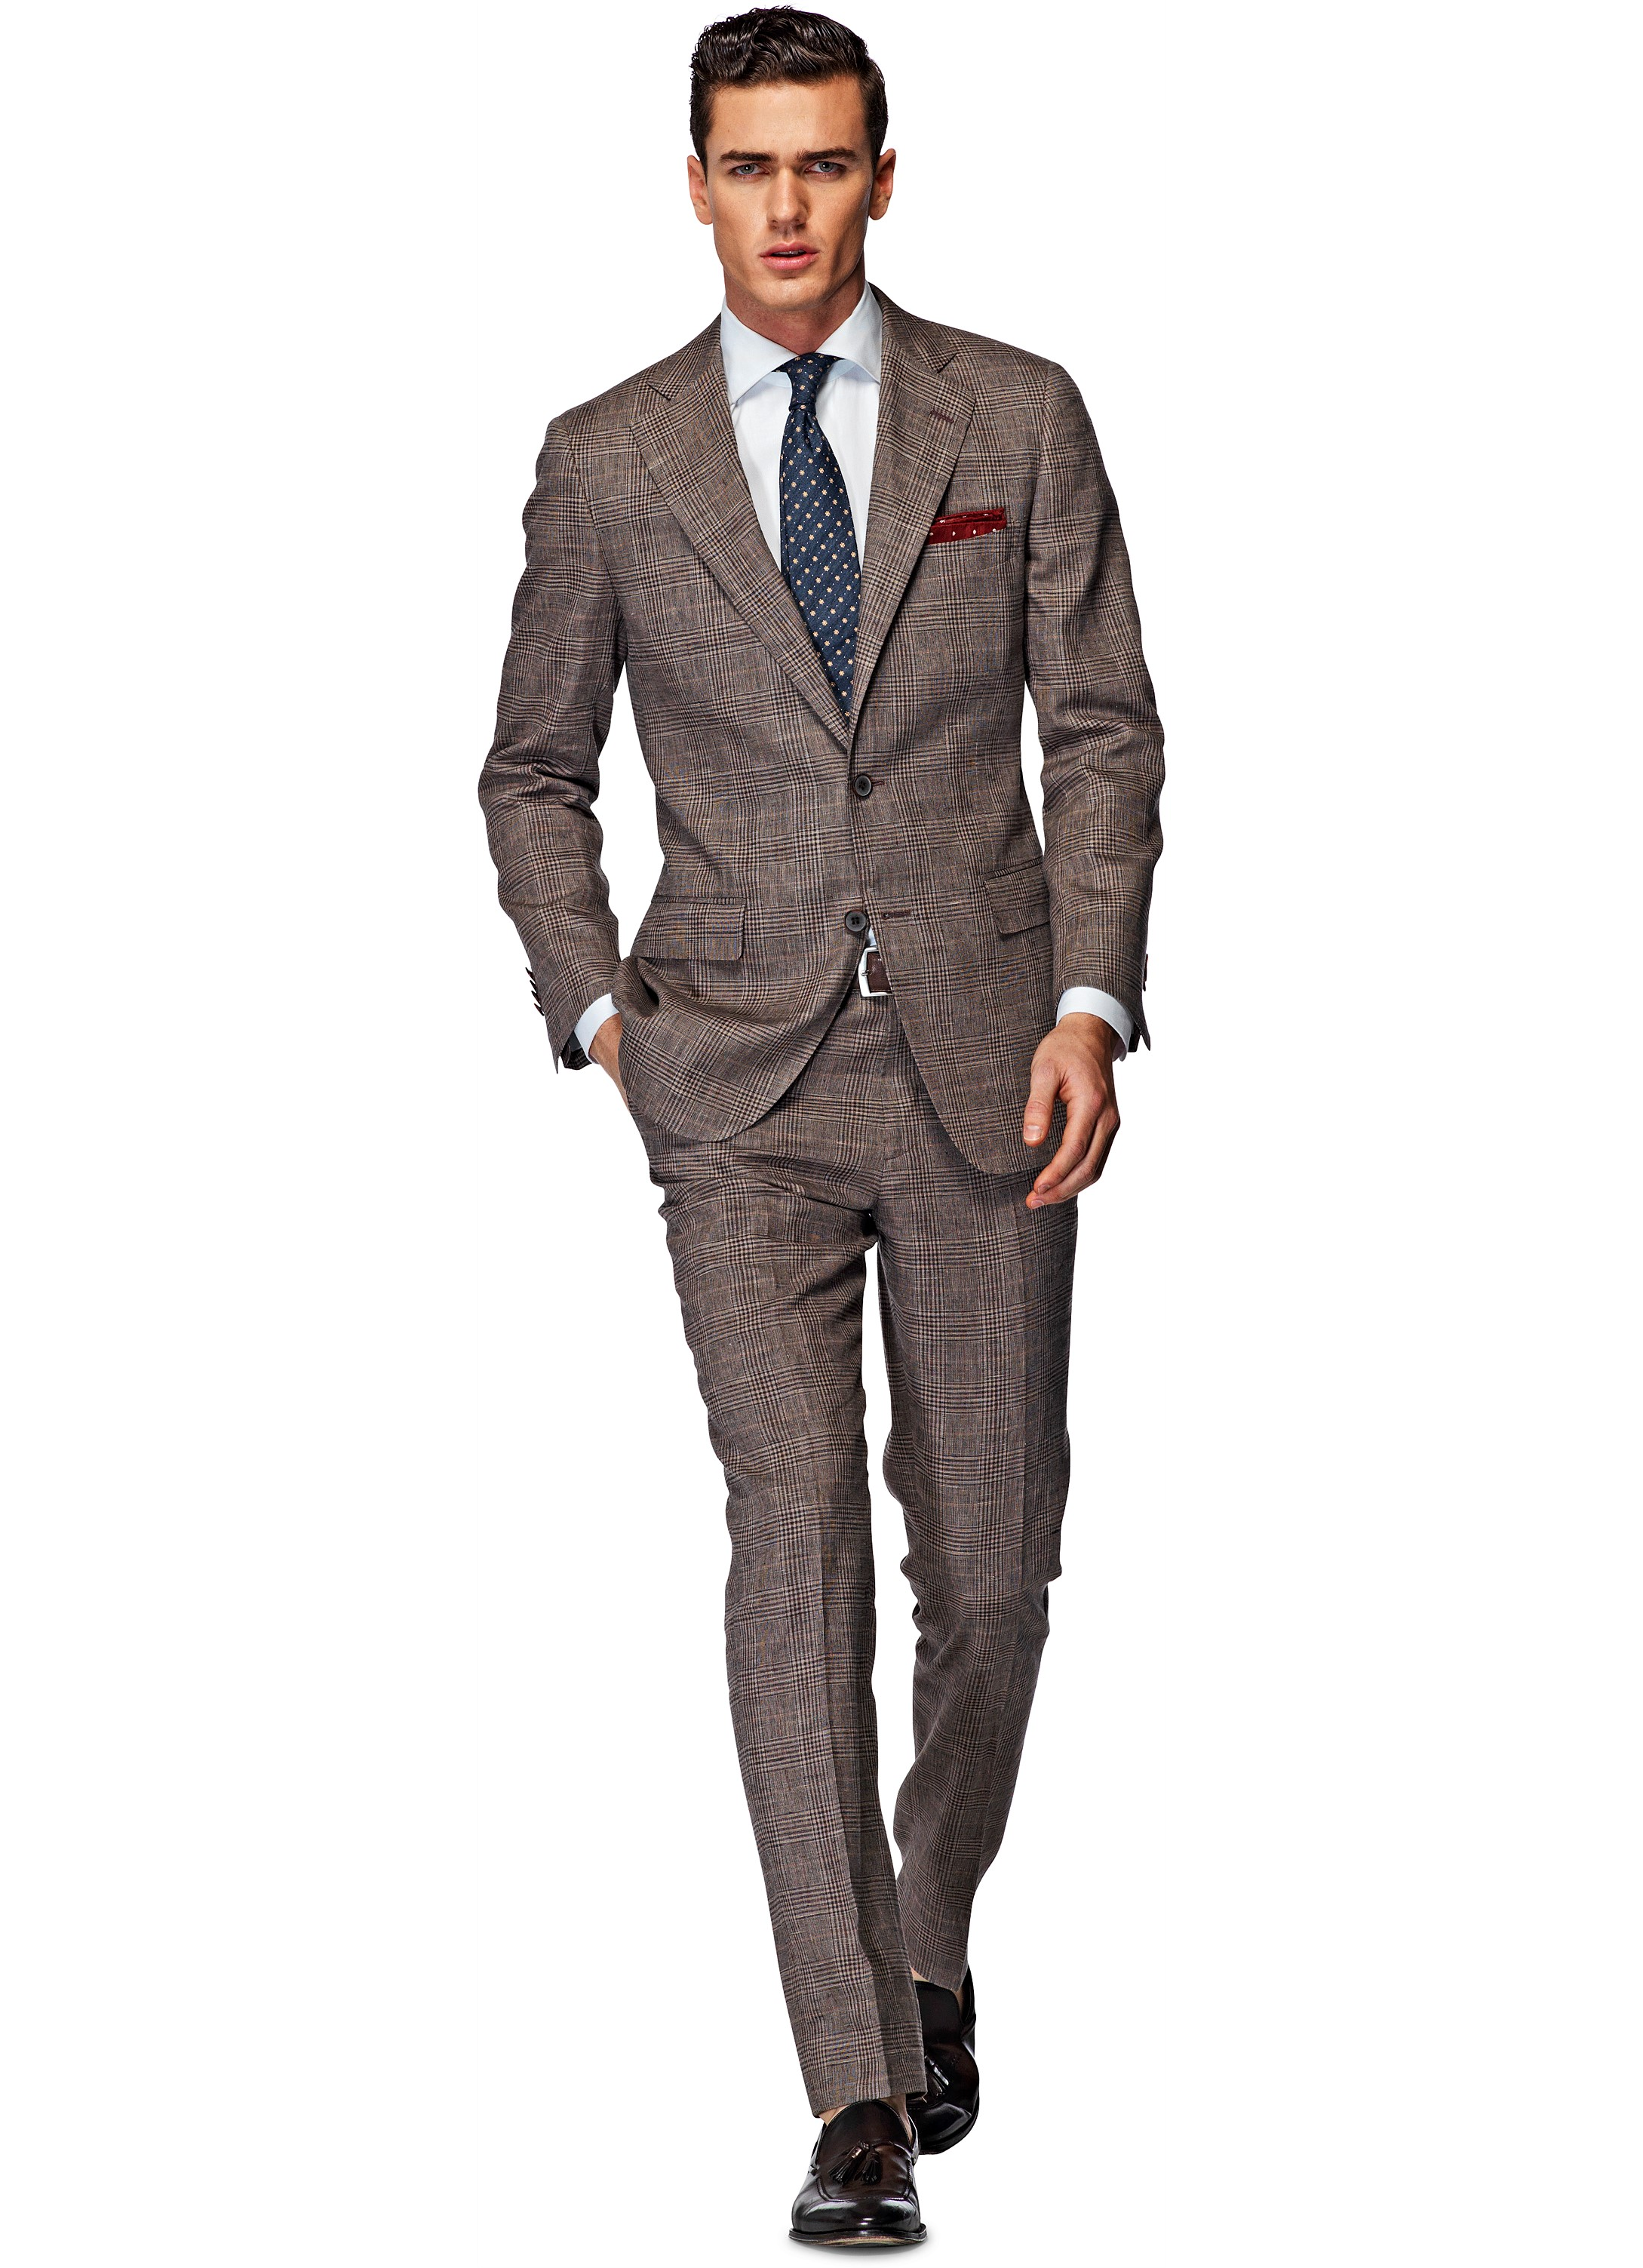 Suits_Brown_Check_York_P3840_Suitsupply_Online_Store_1.jpg